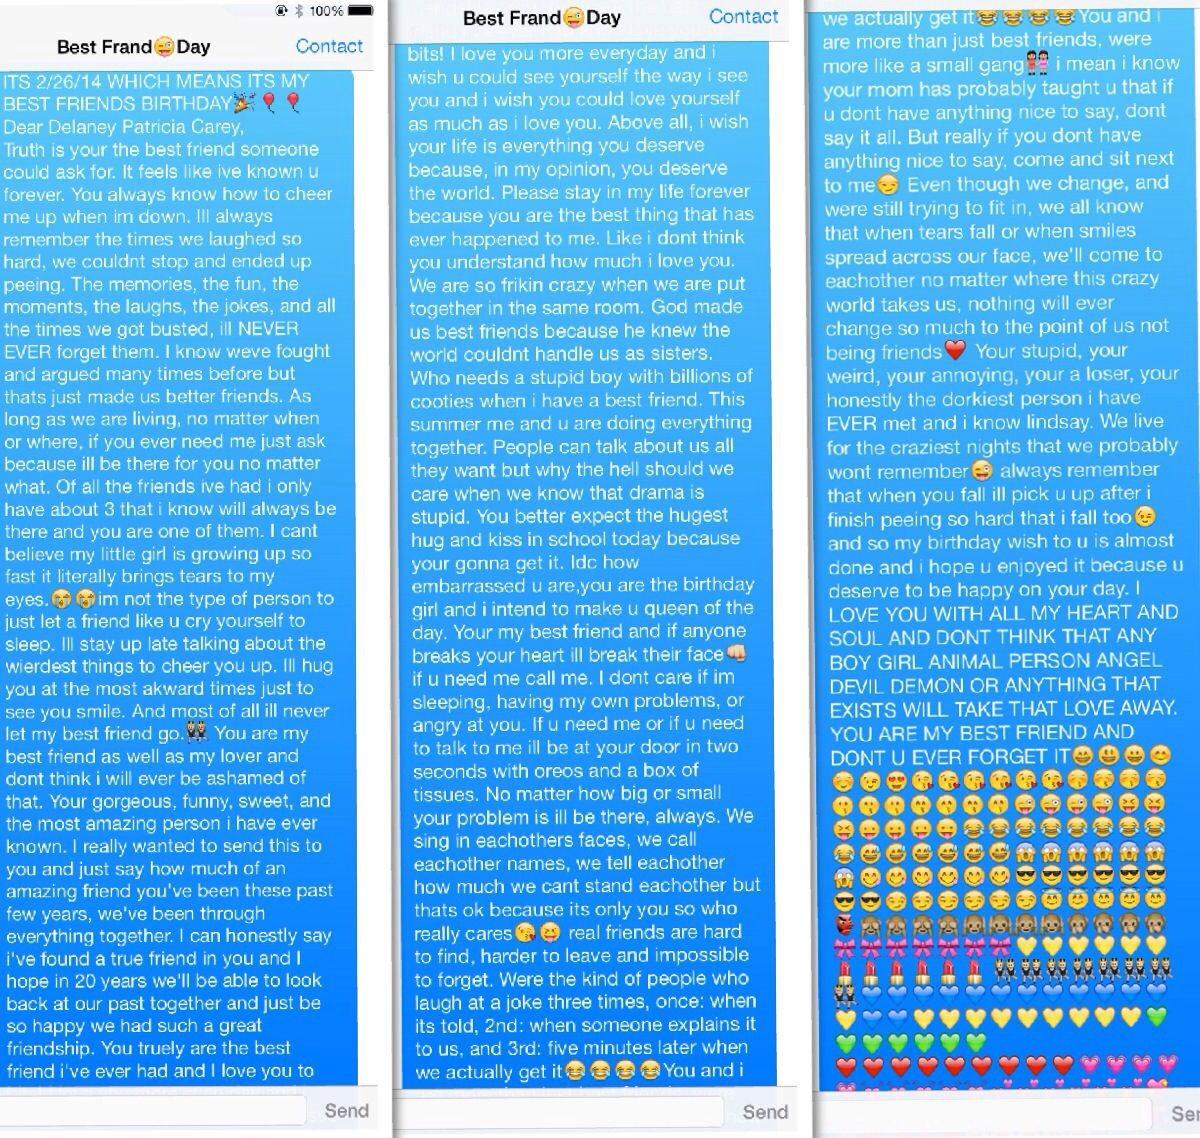 happy birthday long message for best friend ; 16th-birthday-card-messages-for-best-friend-best-of-my-text-message-to-my-best-friend-on-her-birthday-of-16th-birthday-card-messages-for-best-friend